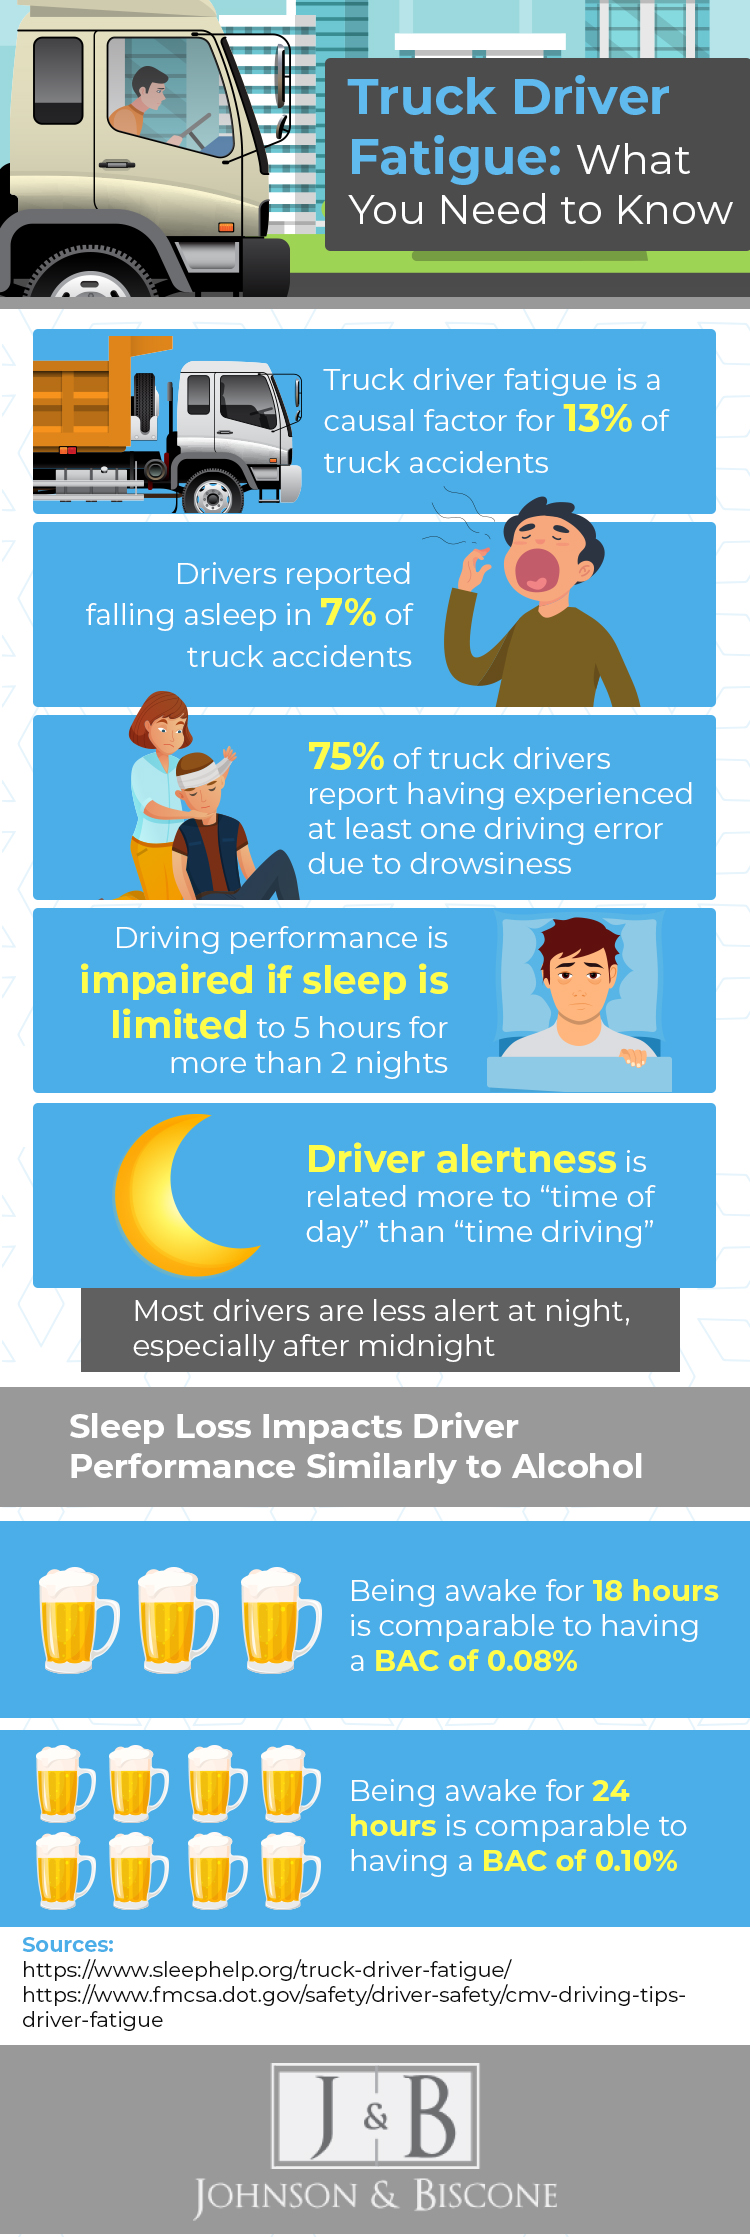 infographic discussing facts and statistics related to the ways truck driver fatigue contributes to truck accidents